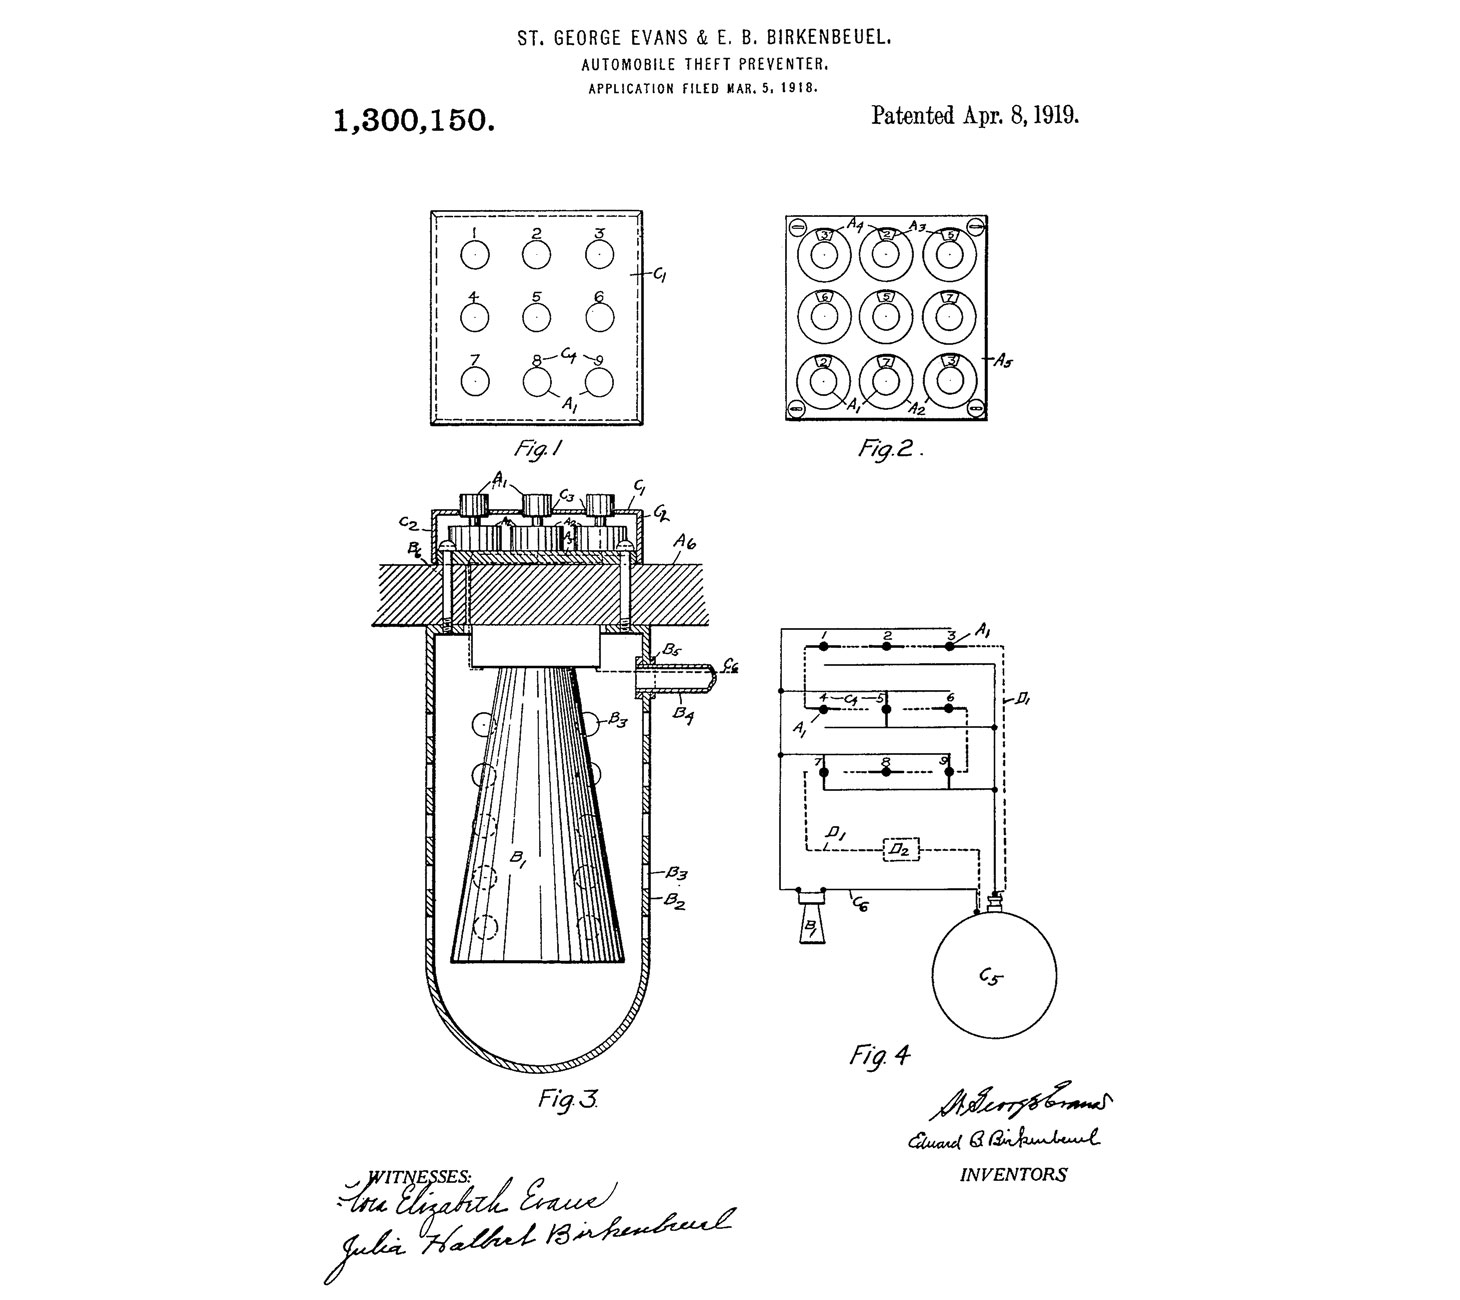 An antitheft system for cars was first patented in 1919